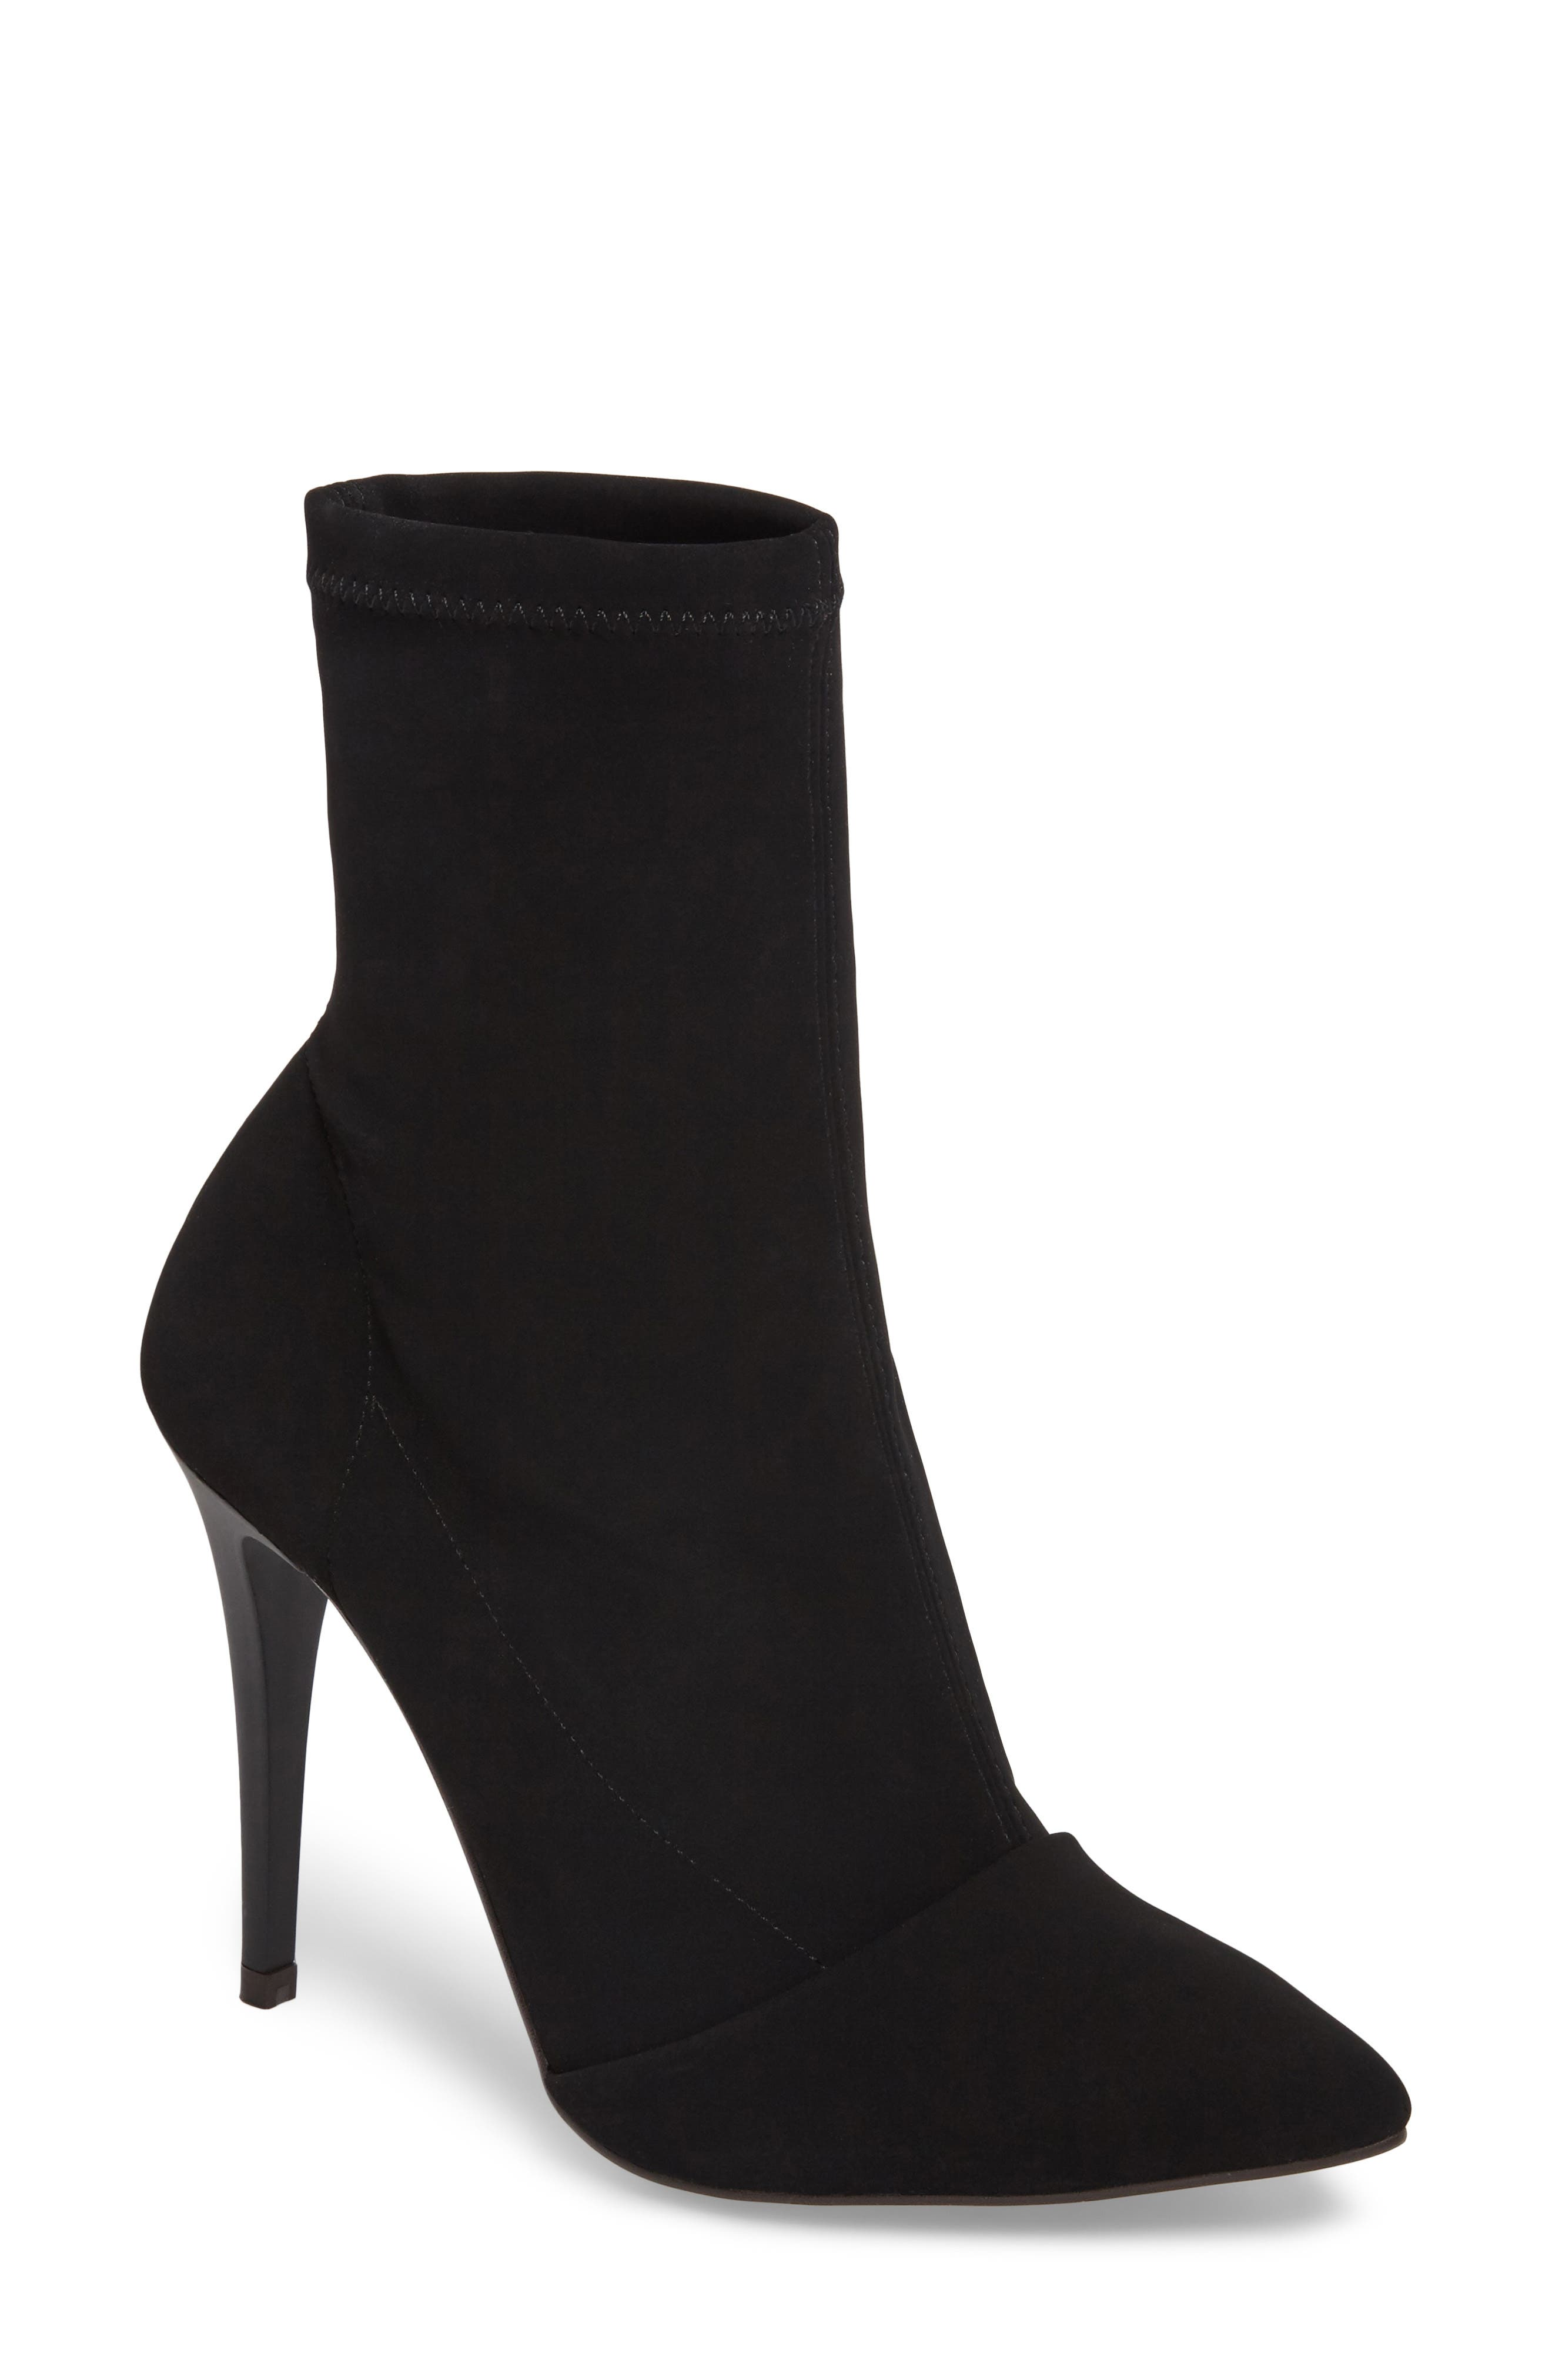 Alternate Image 1 Selected - Topshop Hubba Pointy Toe Bootie (Women)